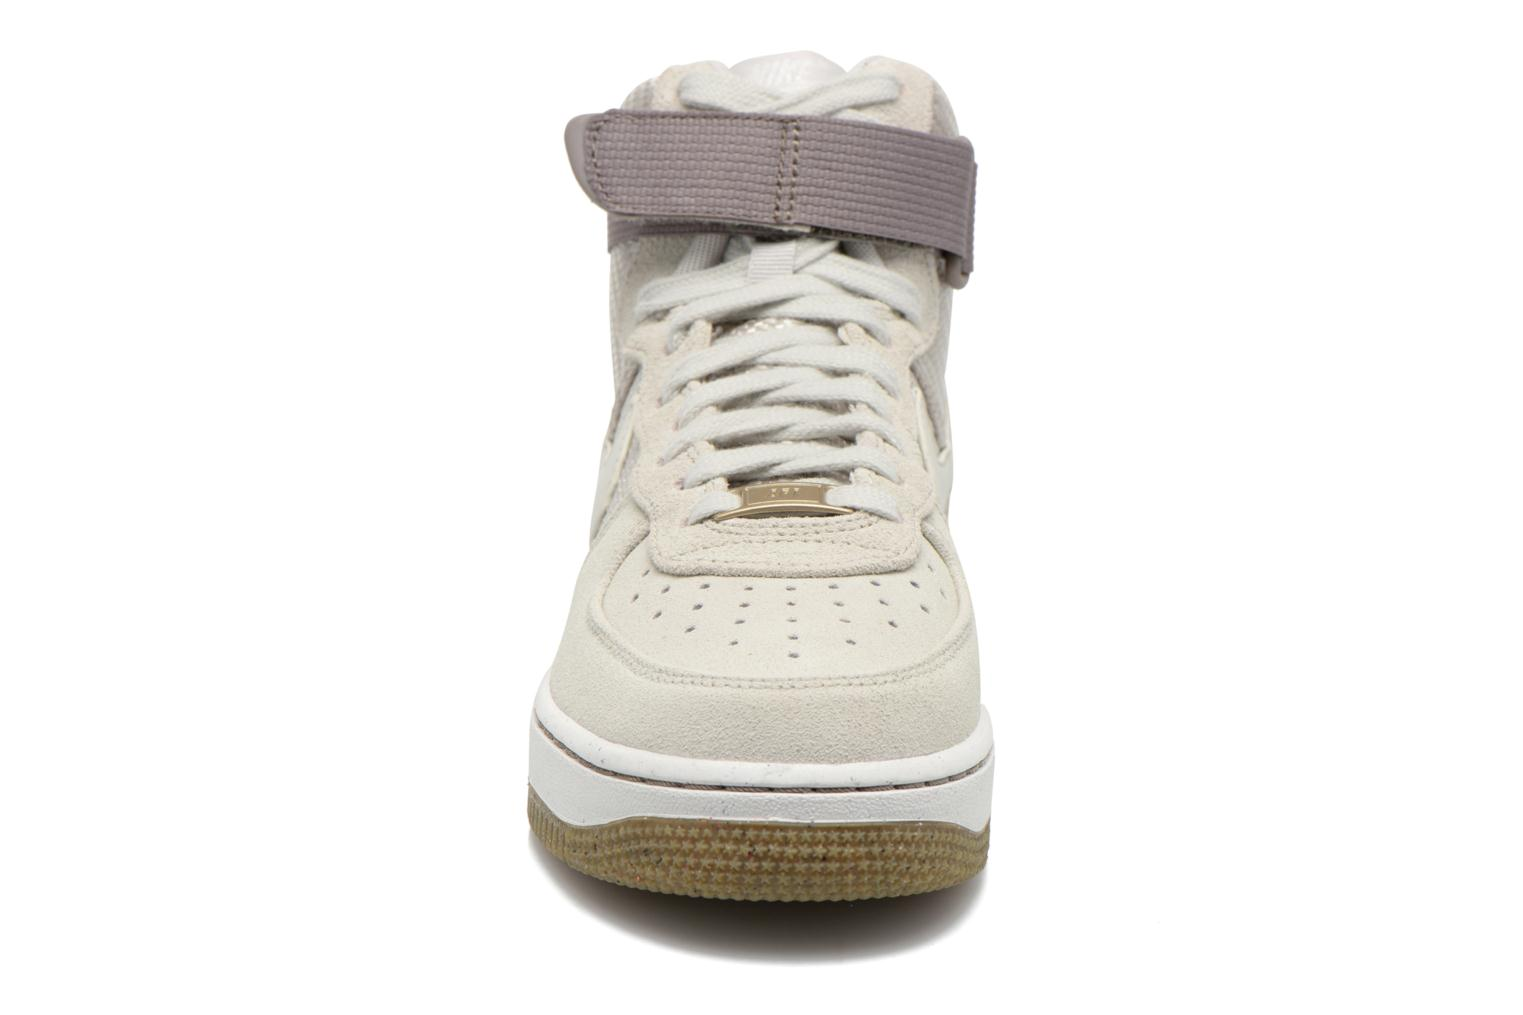 Nike Wmns Air Force 1 Hi Prm